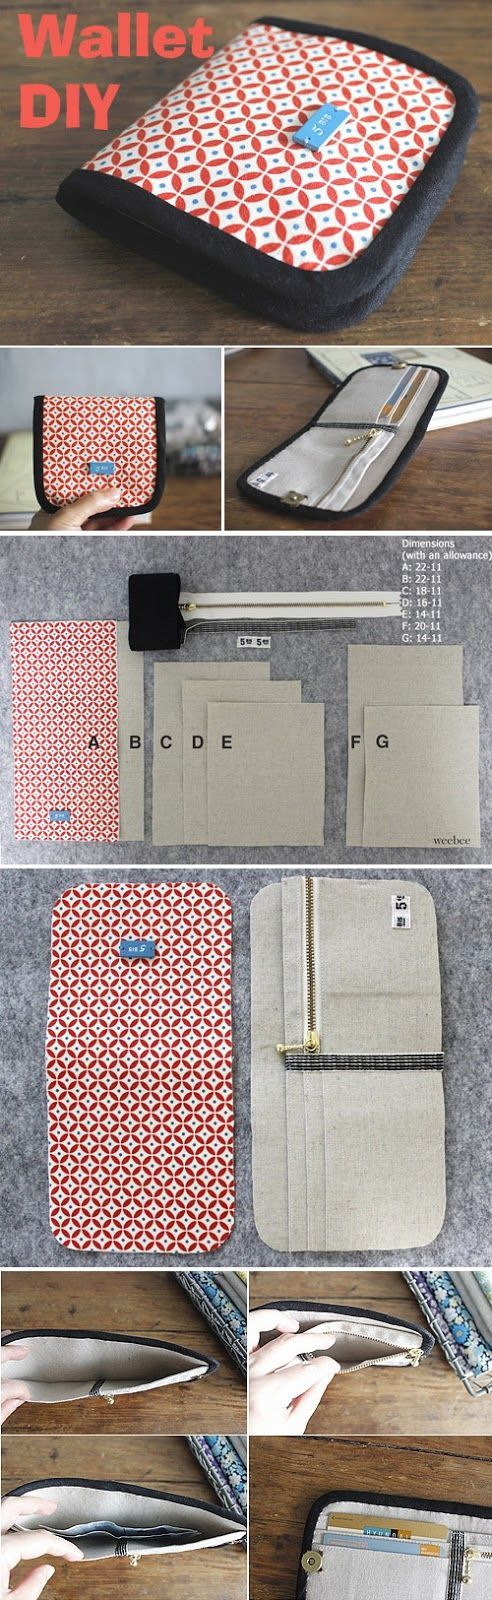 Simple Wallet Sewing Pattern. Step-by-Step DIY Tutorial with Photos ...